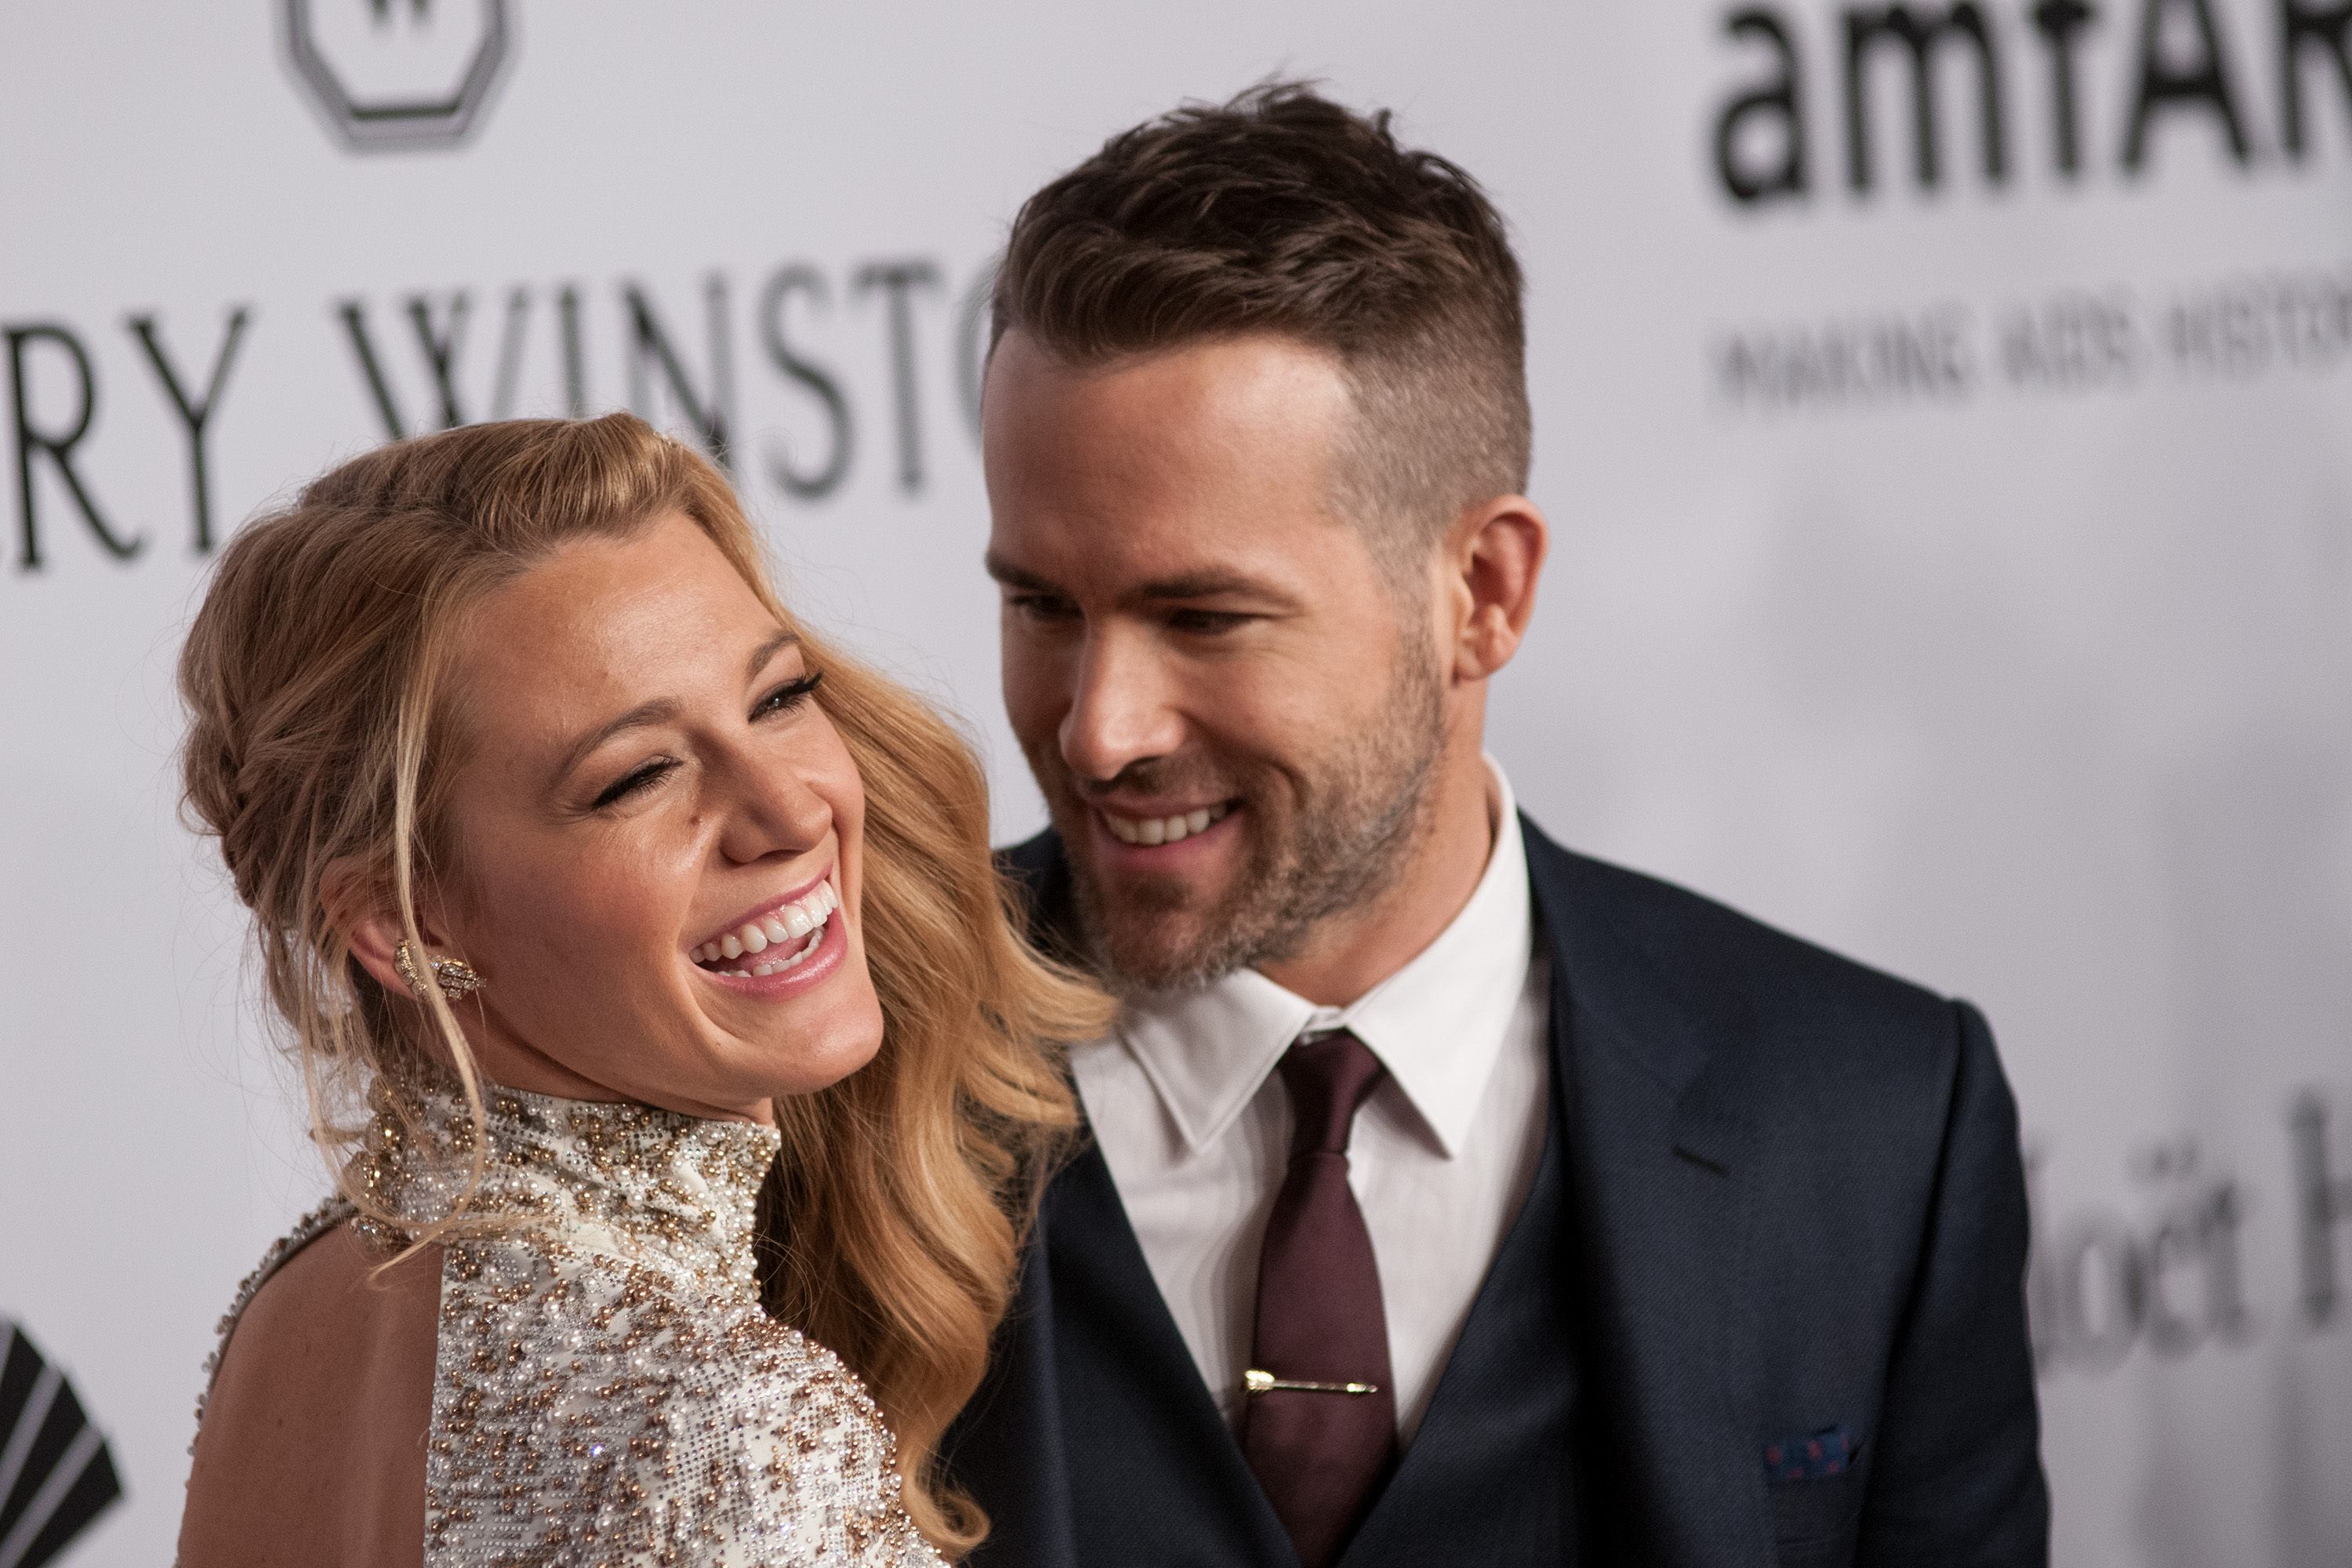 Blake Lively has unfollowed Ryan Reynolds on Instagram. (Photo: WENN)